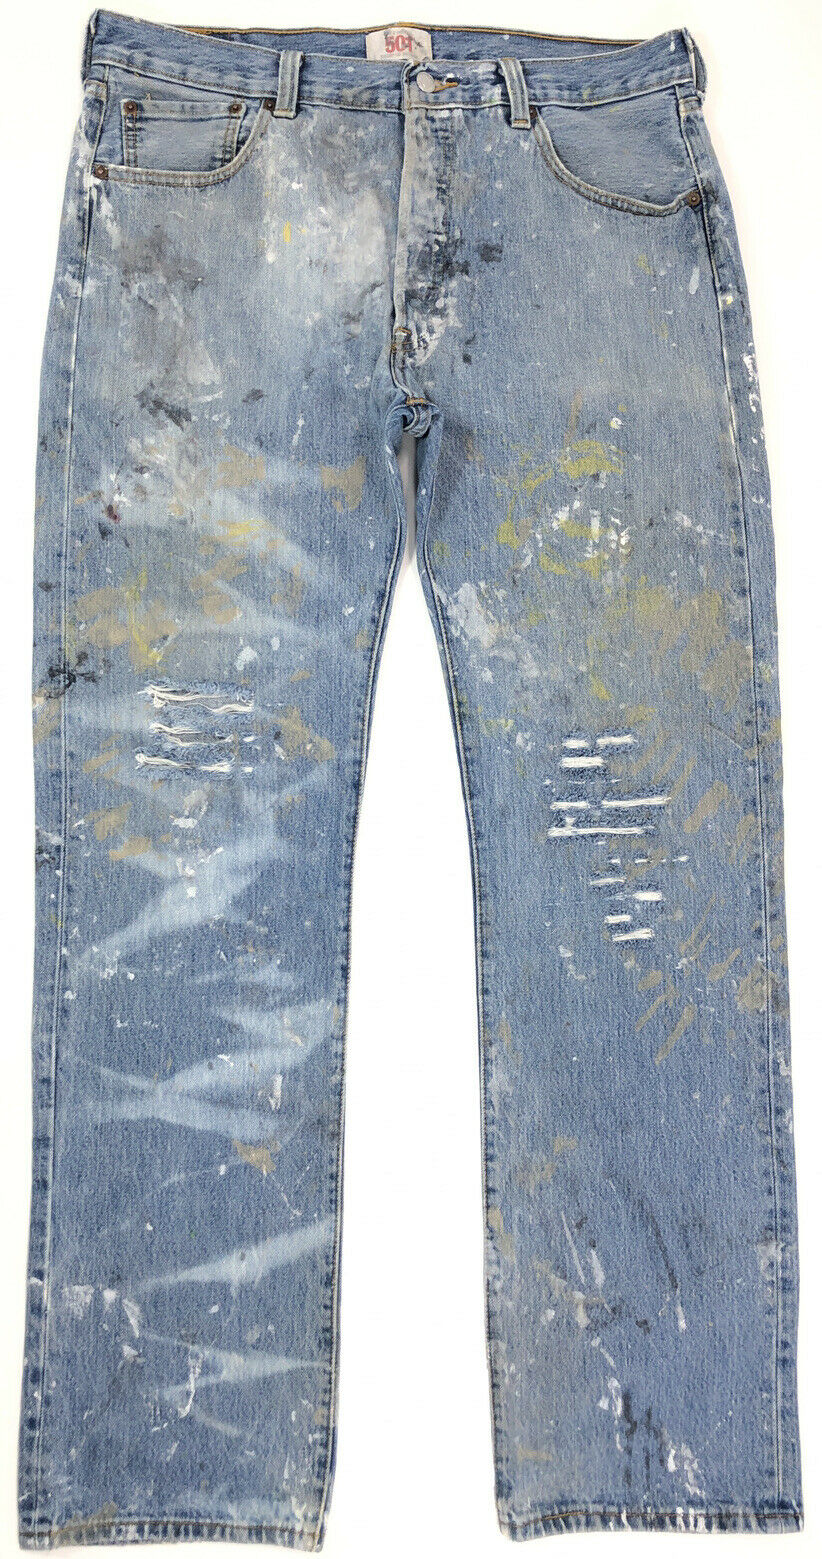 vtg 90s LEVI'S 501 Faded Work Worn Button Fly Jea… - image 2